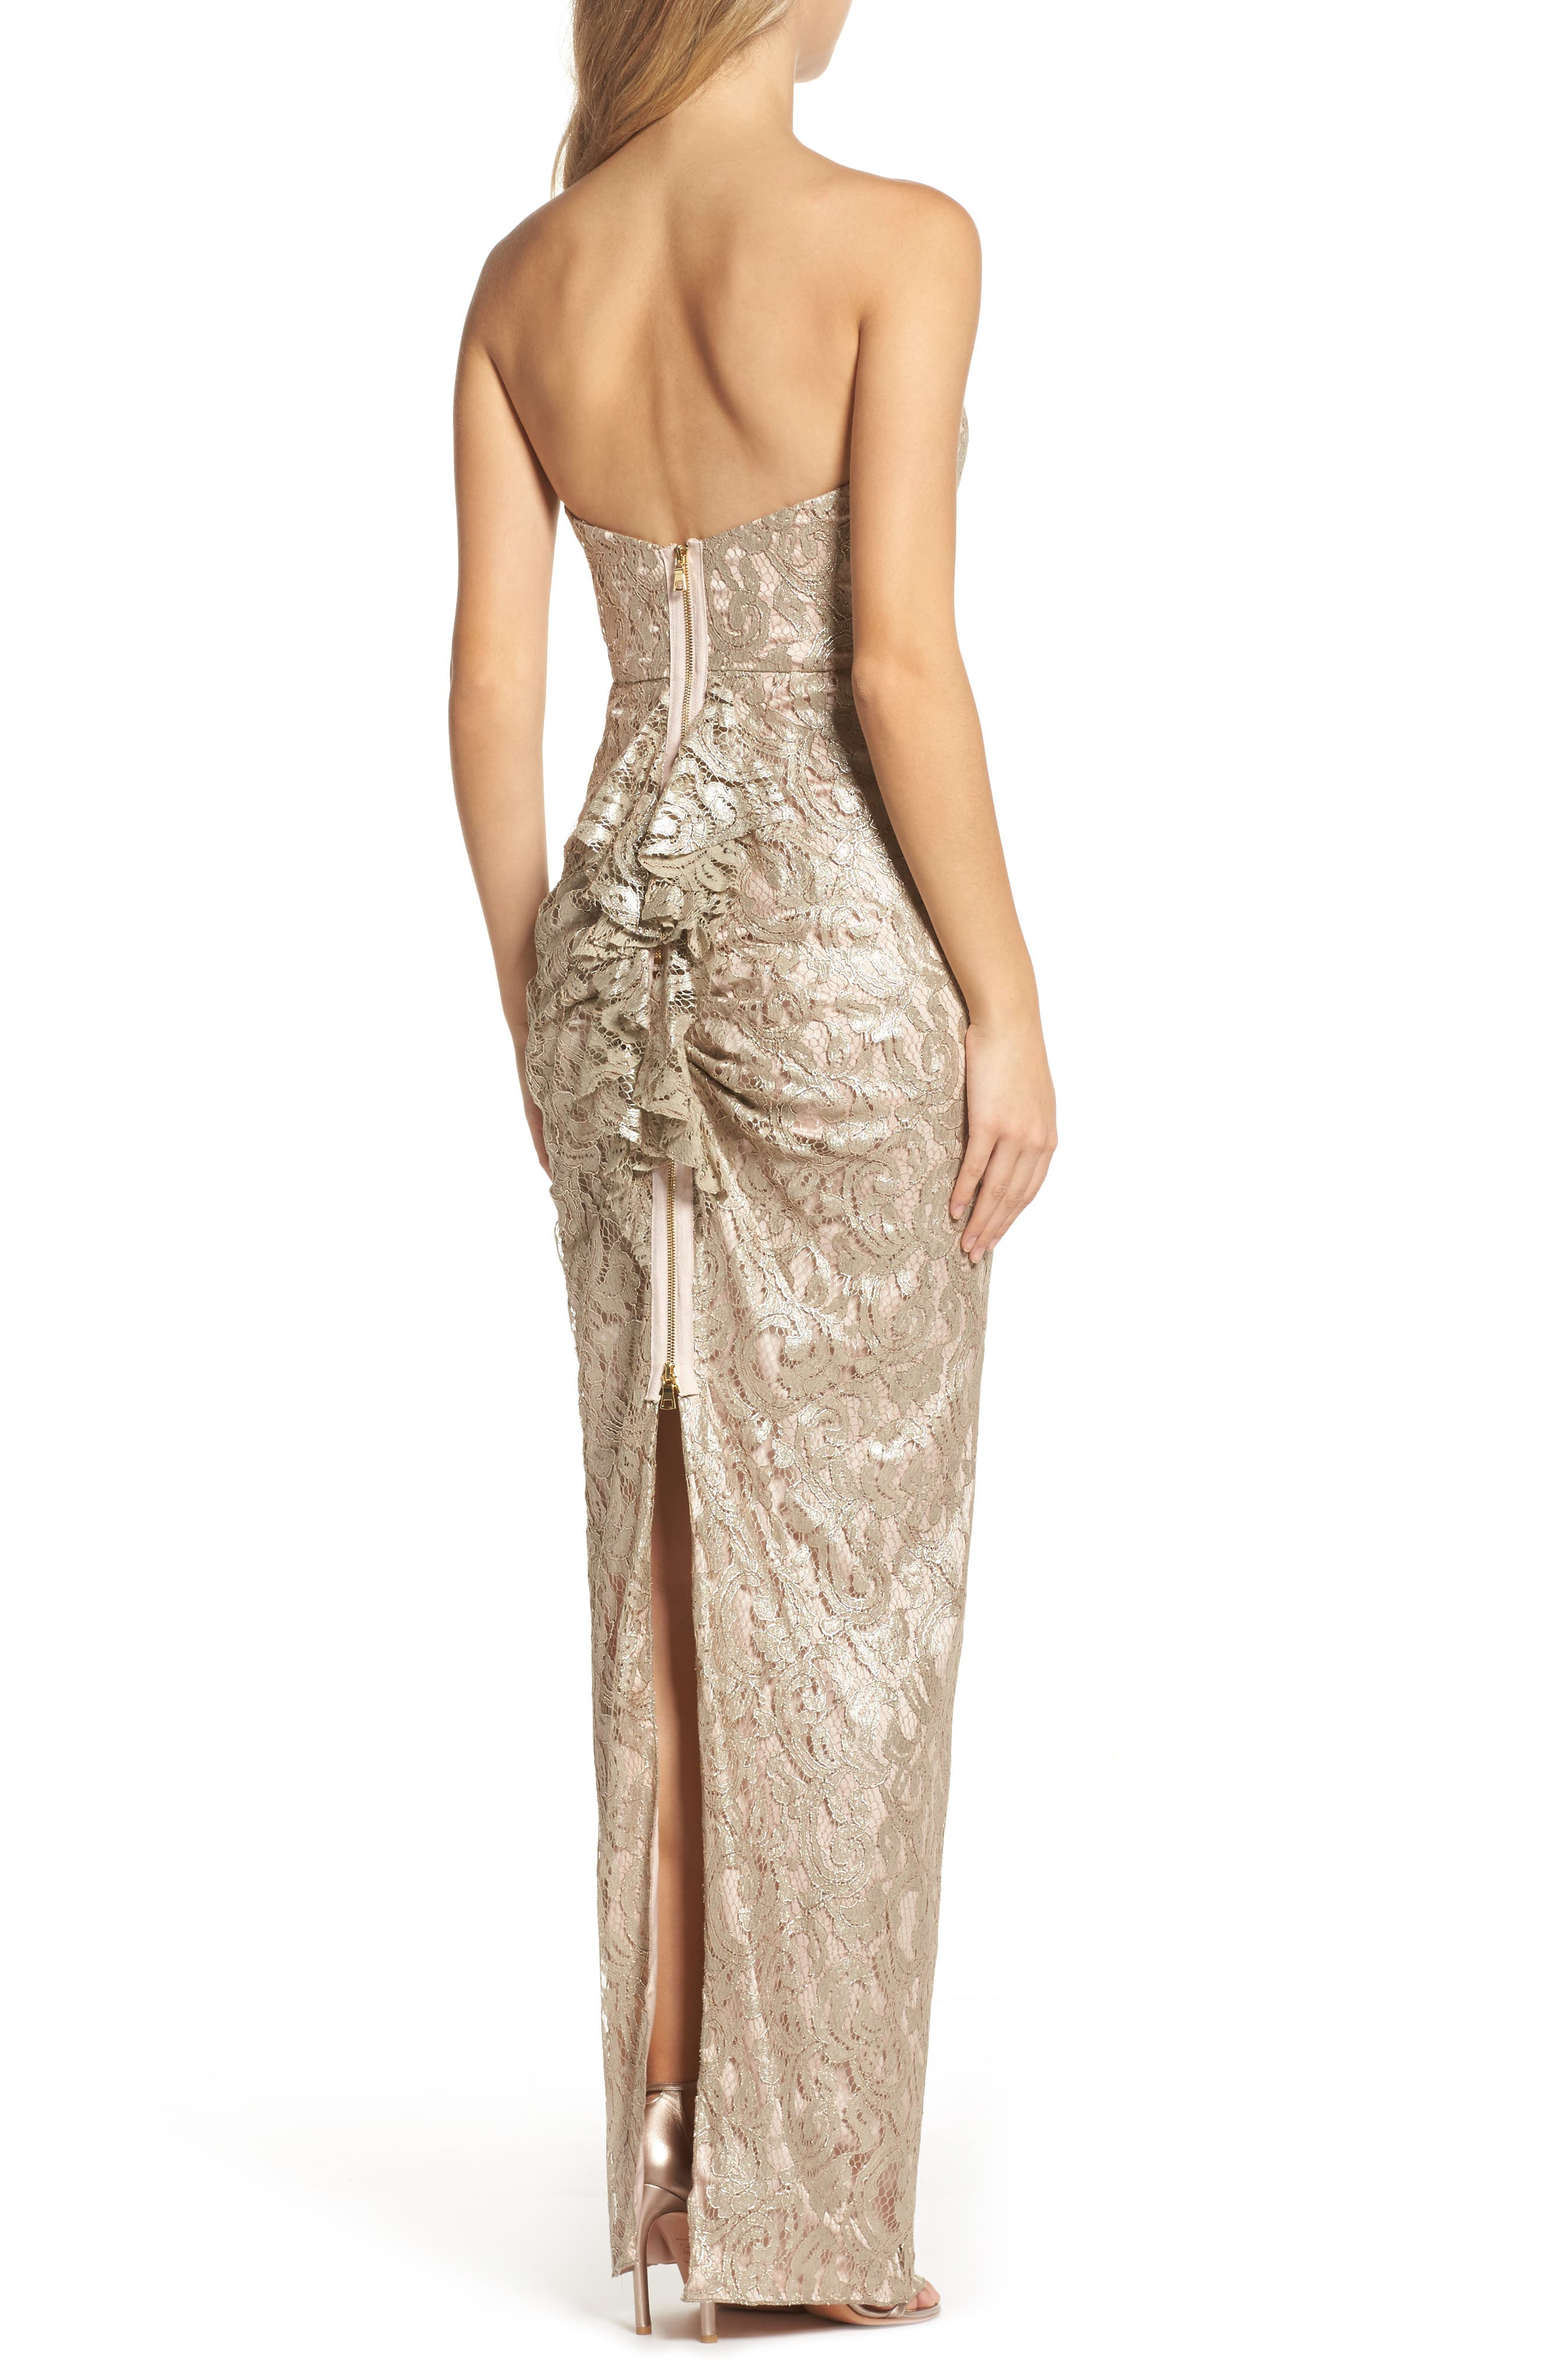 Starla Ruffle Back Strapless Lace Gown,                             Alternate thumbnail 2, color,                             710